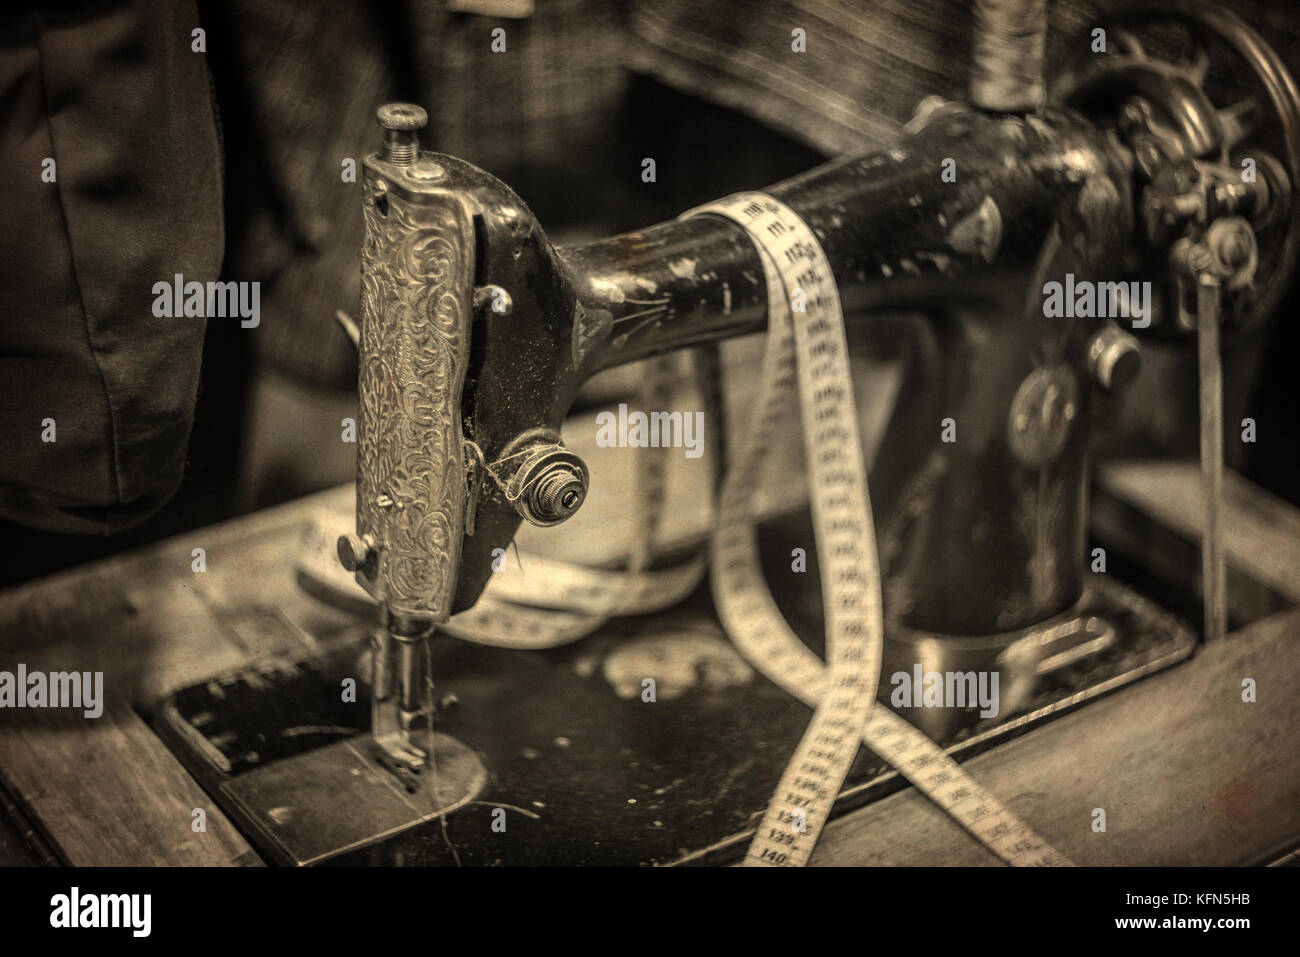 Antique Sewing Machine, shot with very old Vintage Lens, weathered textured Photograph, in Sepia Tones Stock Photo